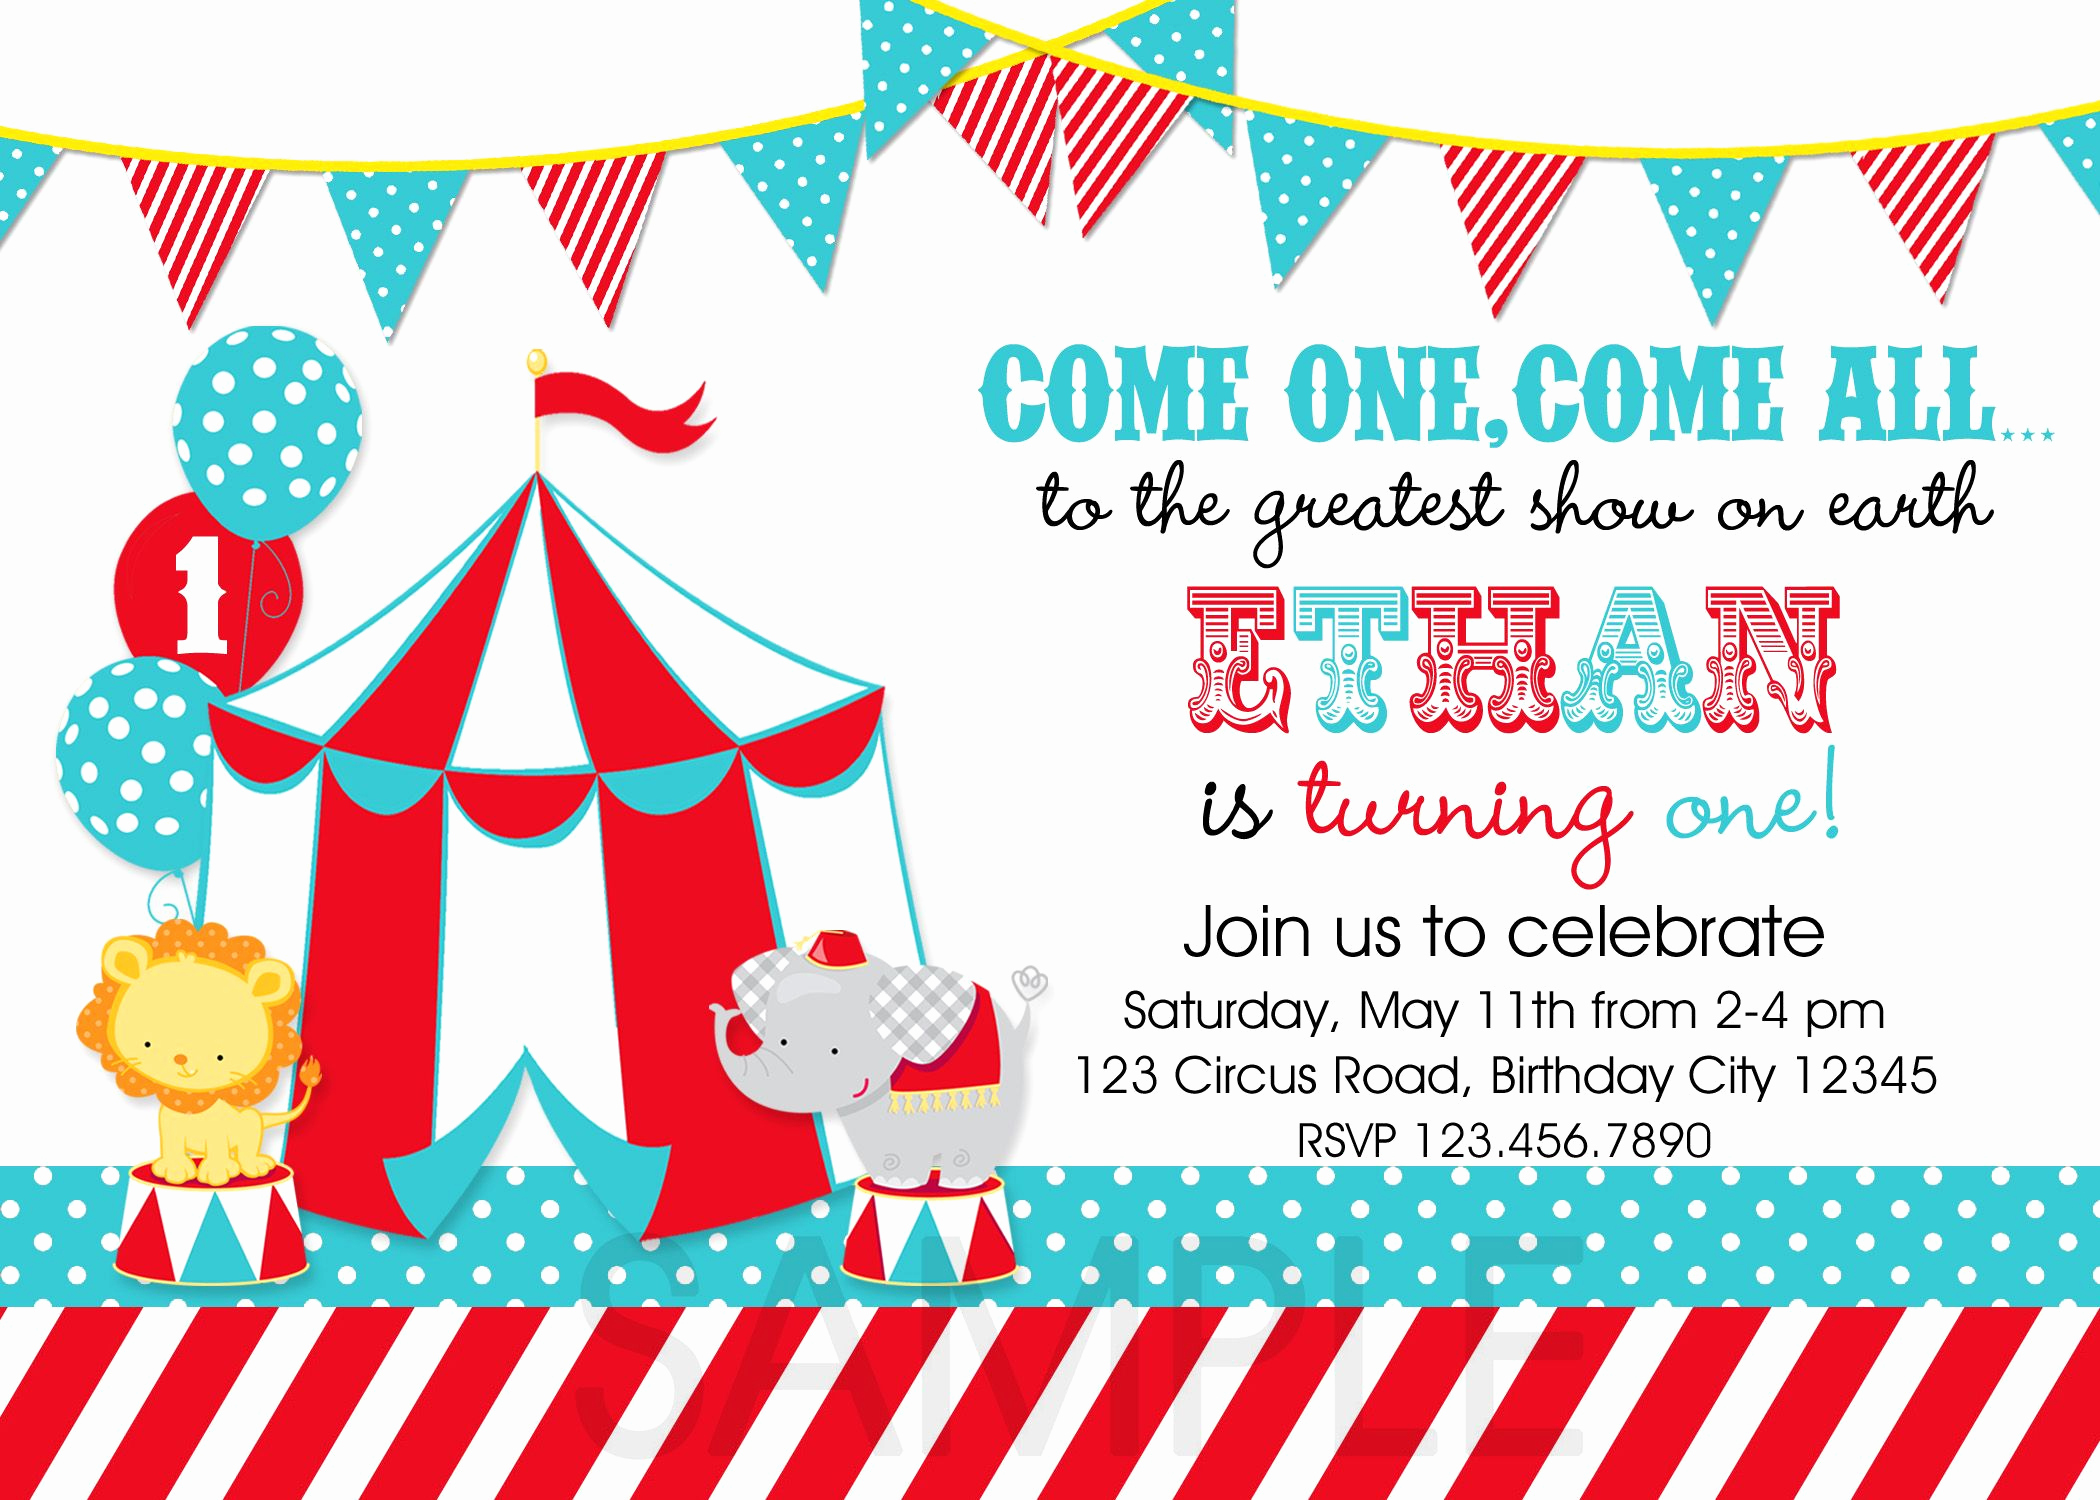 Carnival Invitation Templates Free Beautiful Circus Party Invitations Template 3zcfy9xw